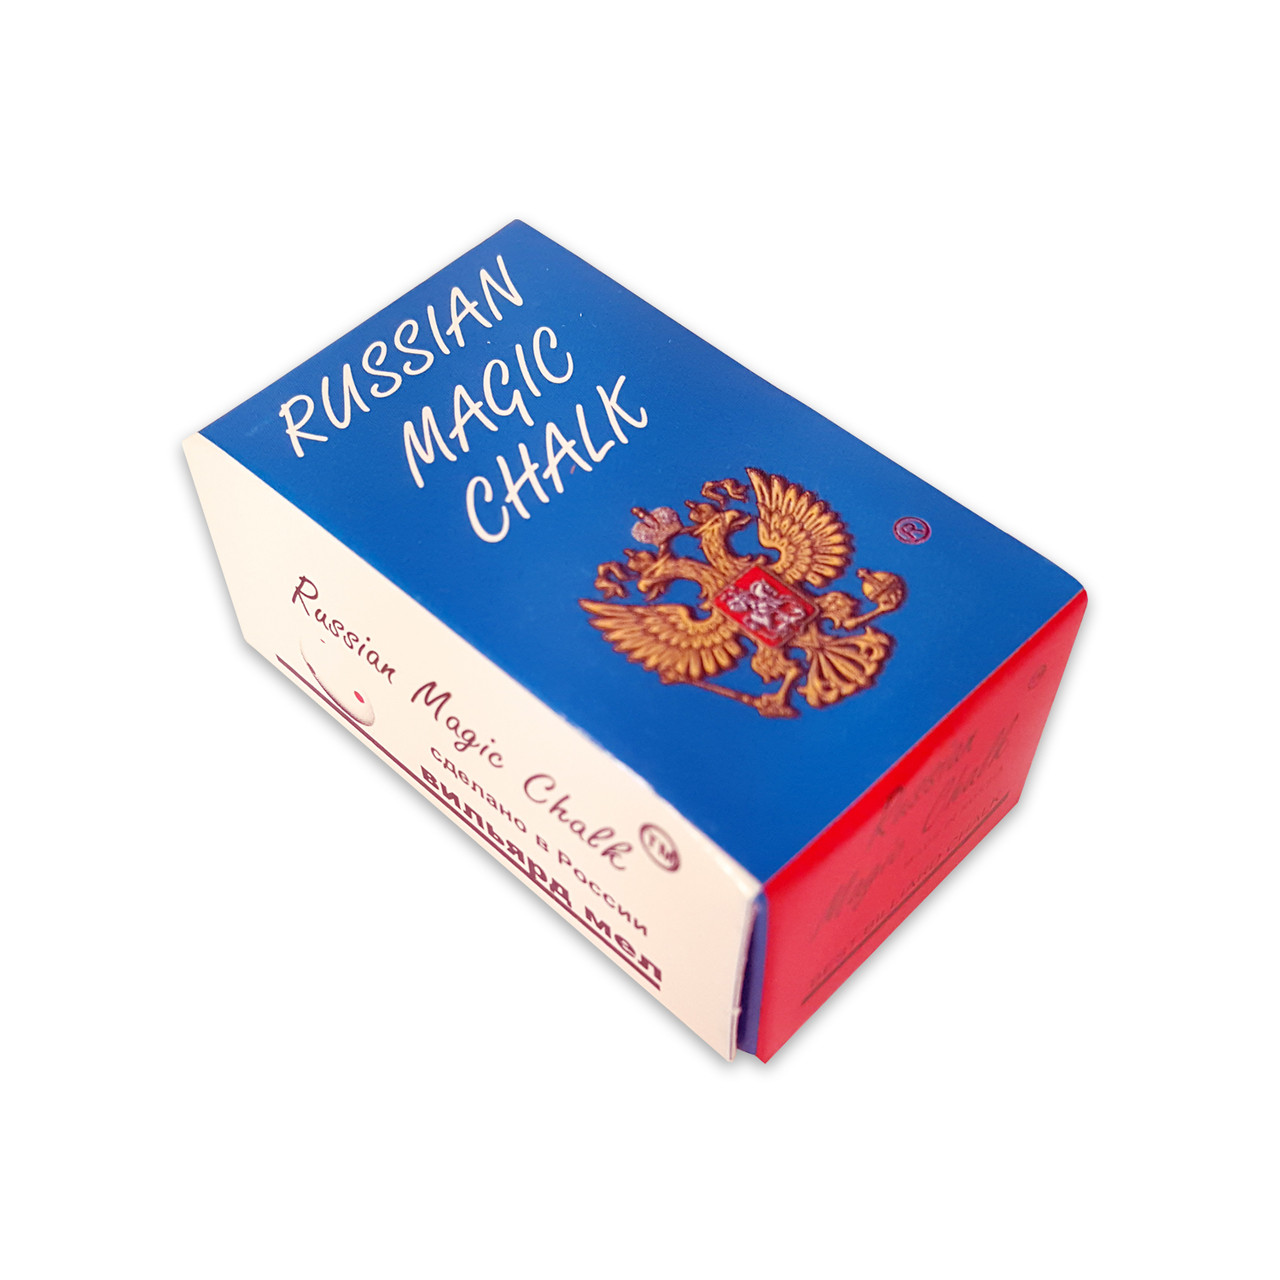 Russian Magic Chalk - Box